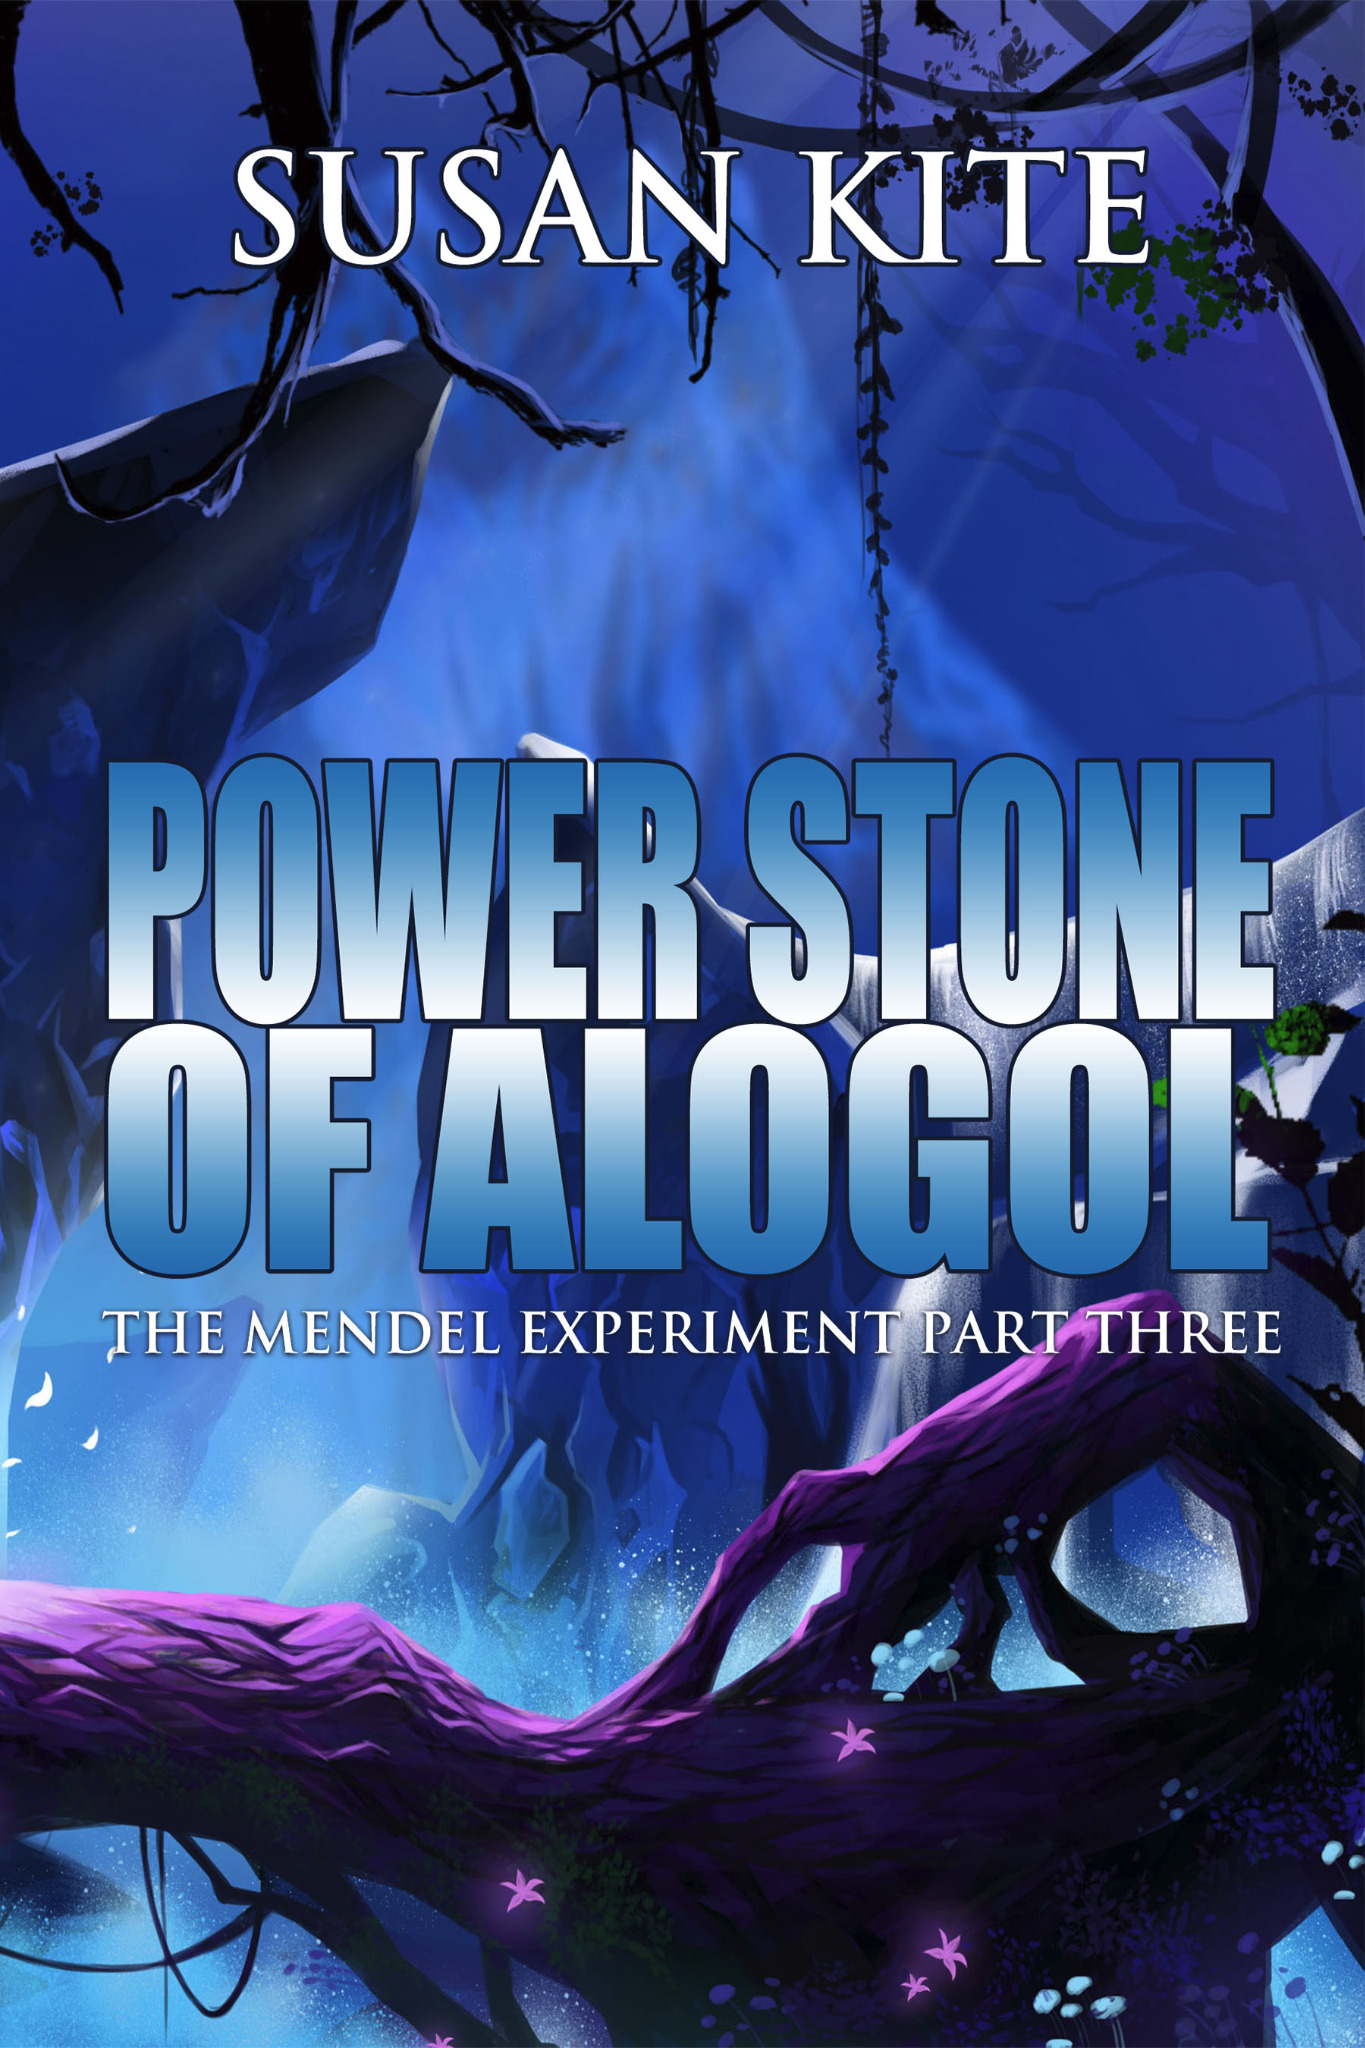 Power Stone of Alogol - The Mendel Experiment Part Three